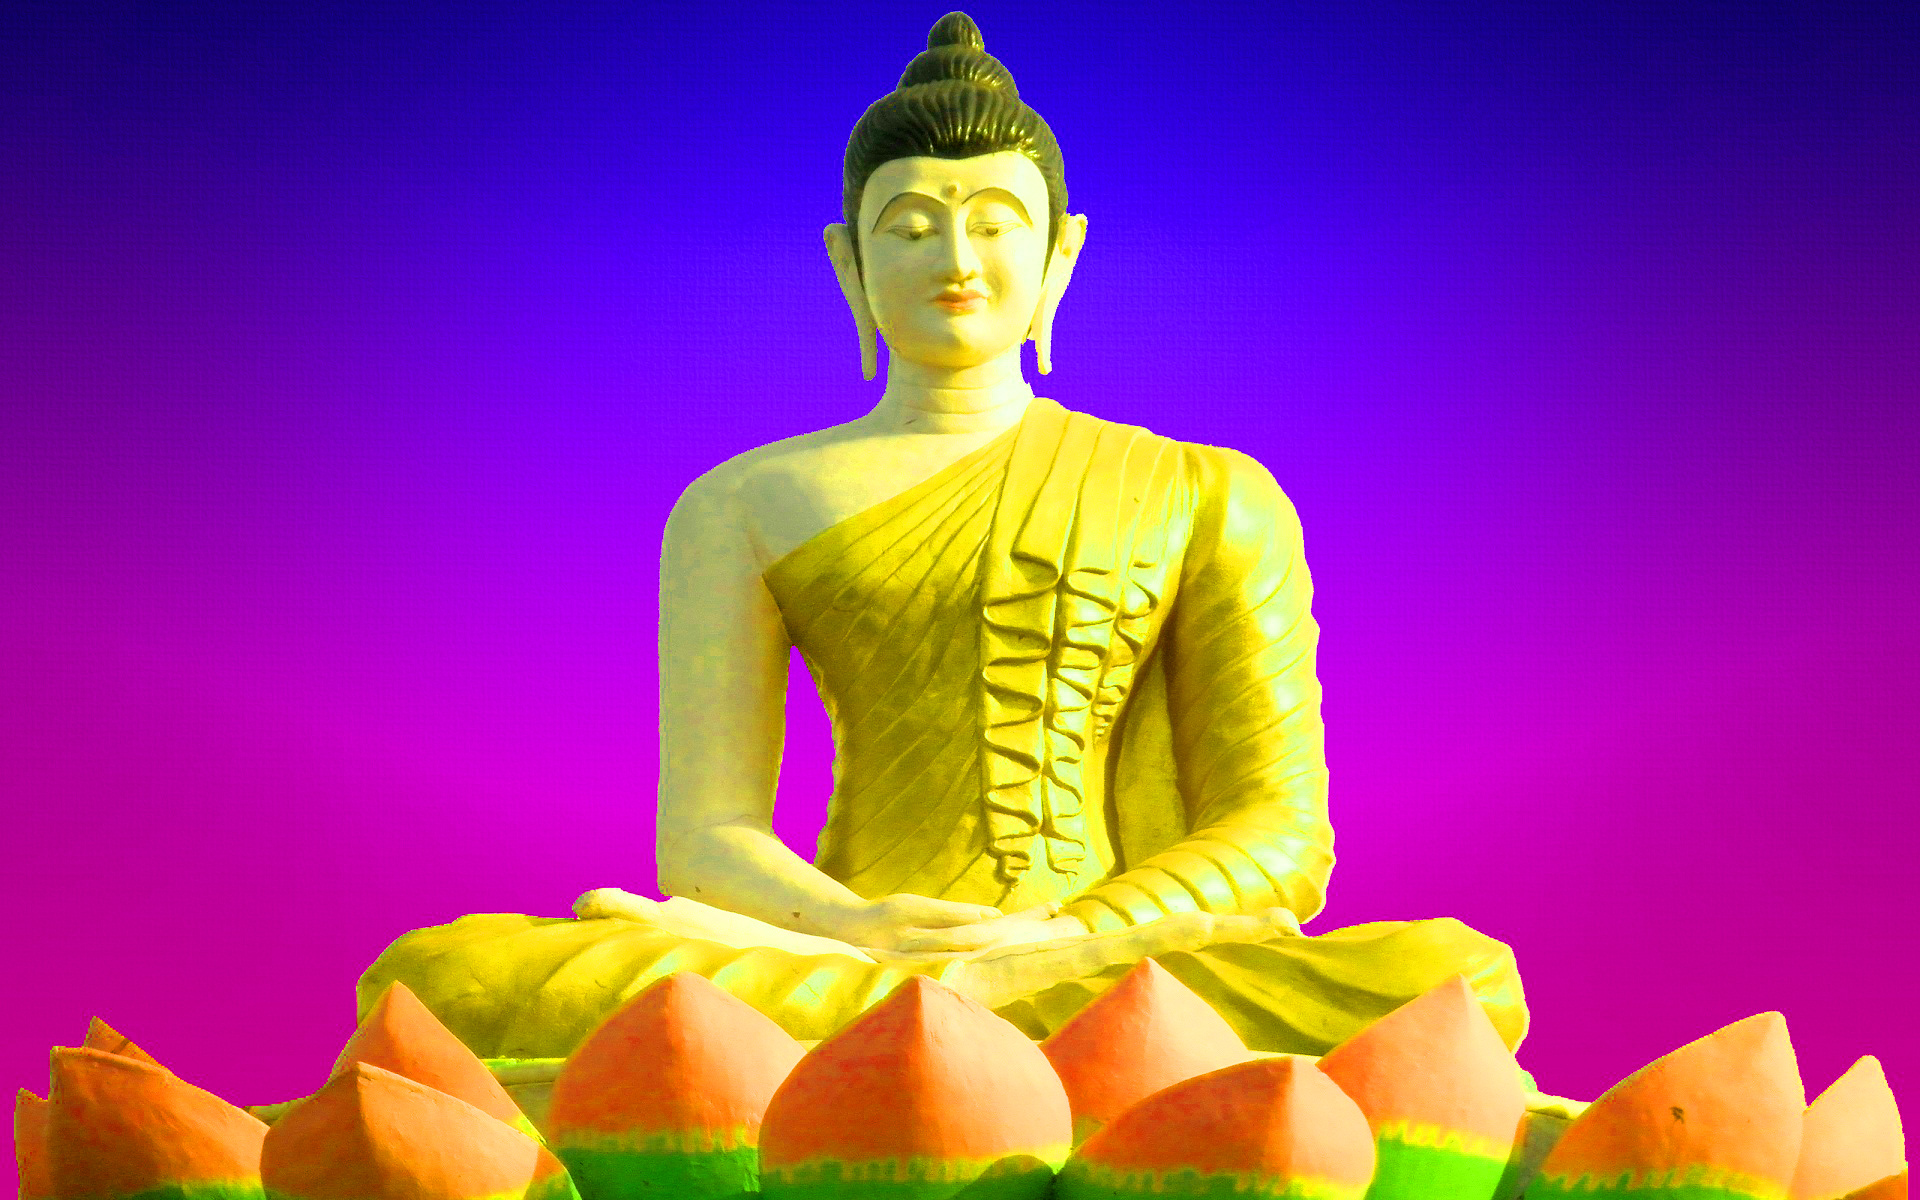 Gautama Buddha images Pics Photo for Whatsapp